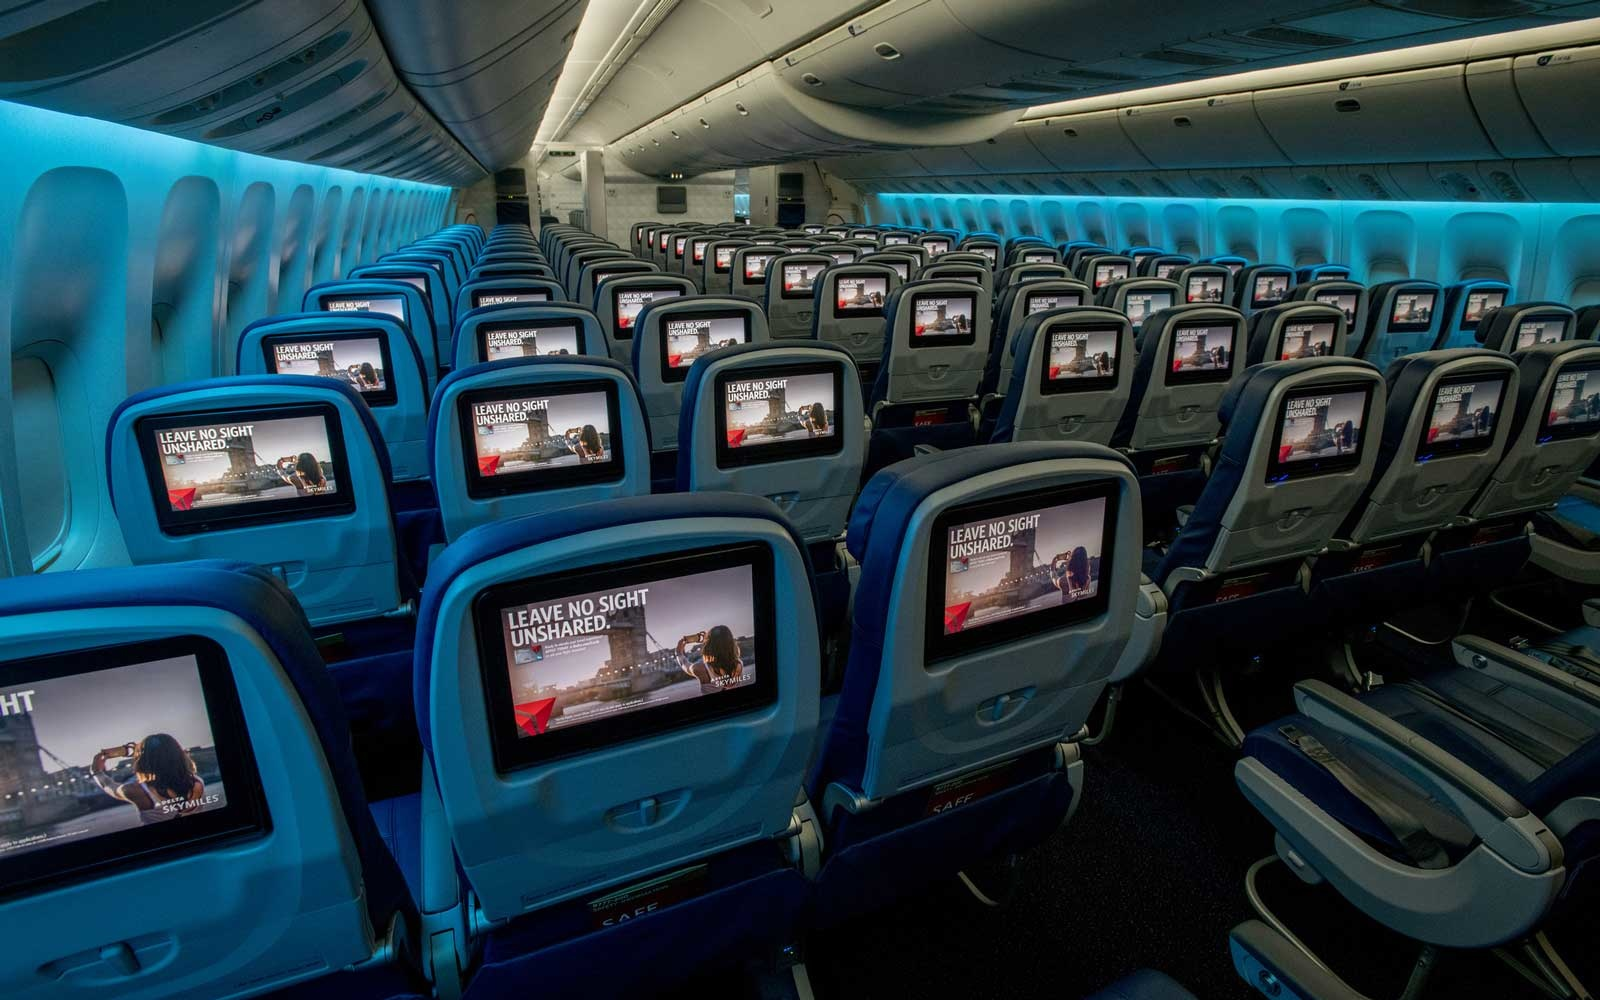 Delta Airlines in-fligth entertainment introduces Hulu